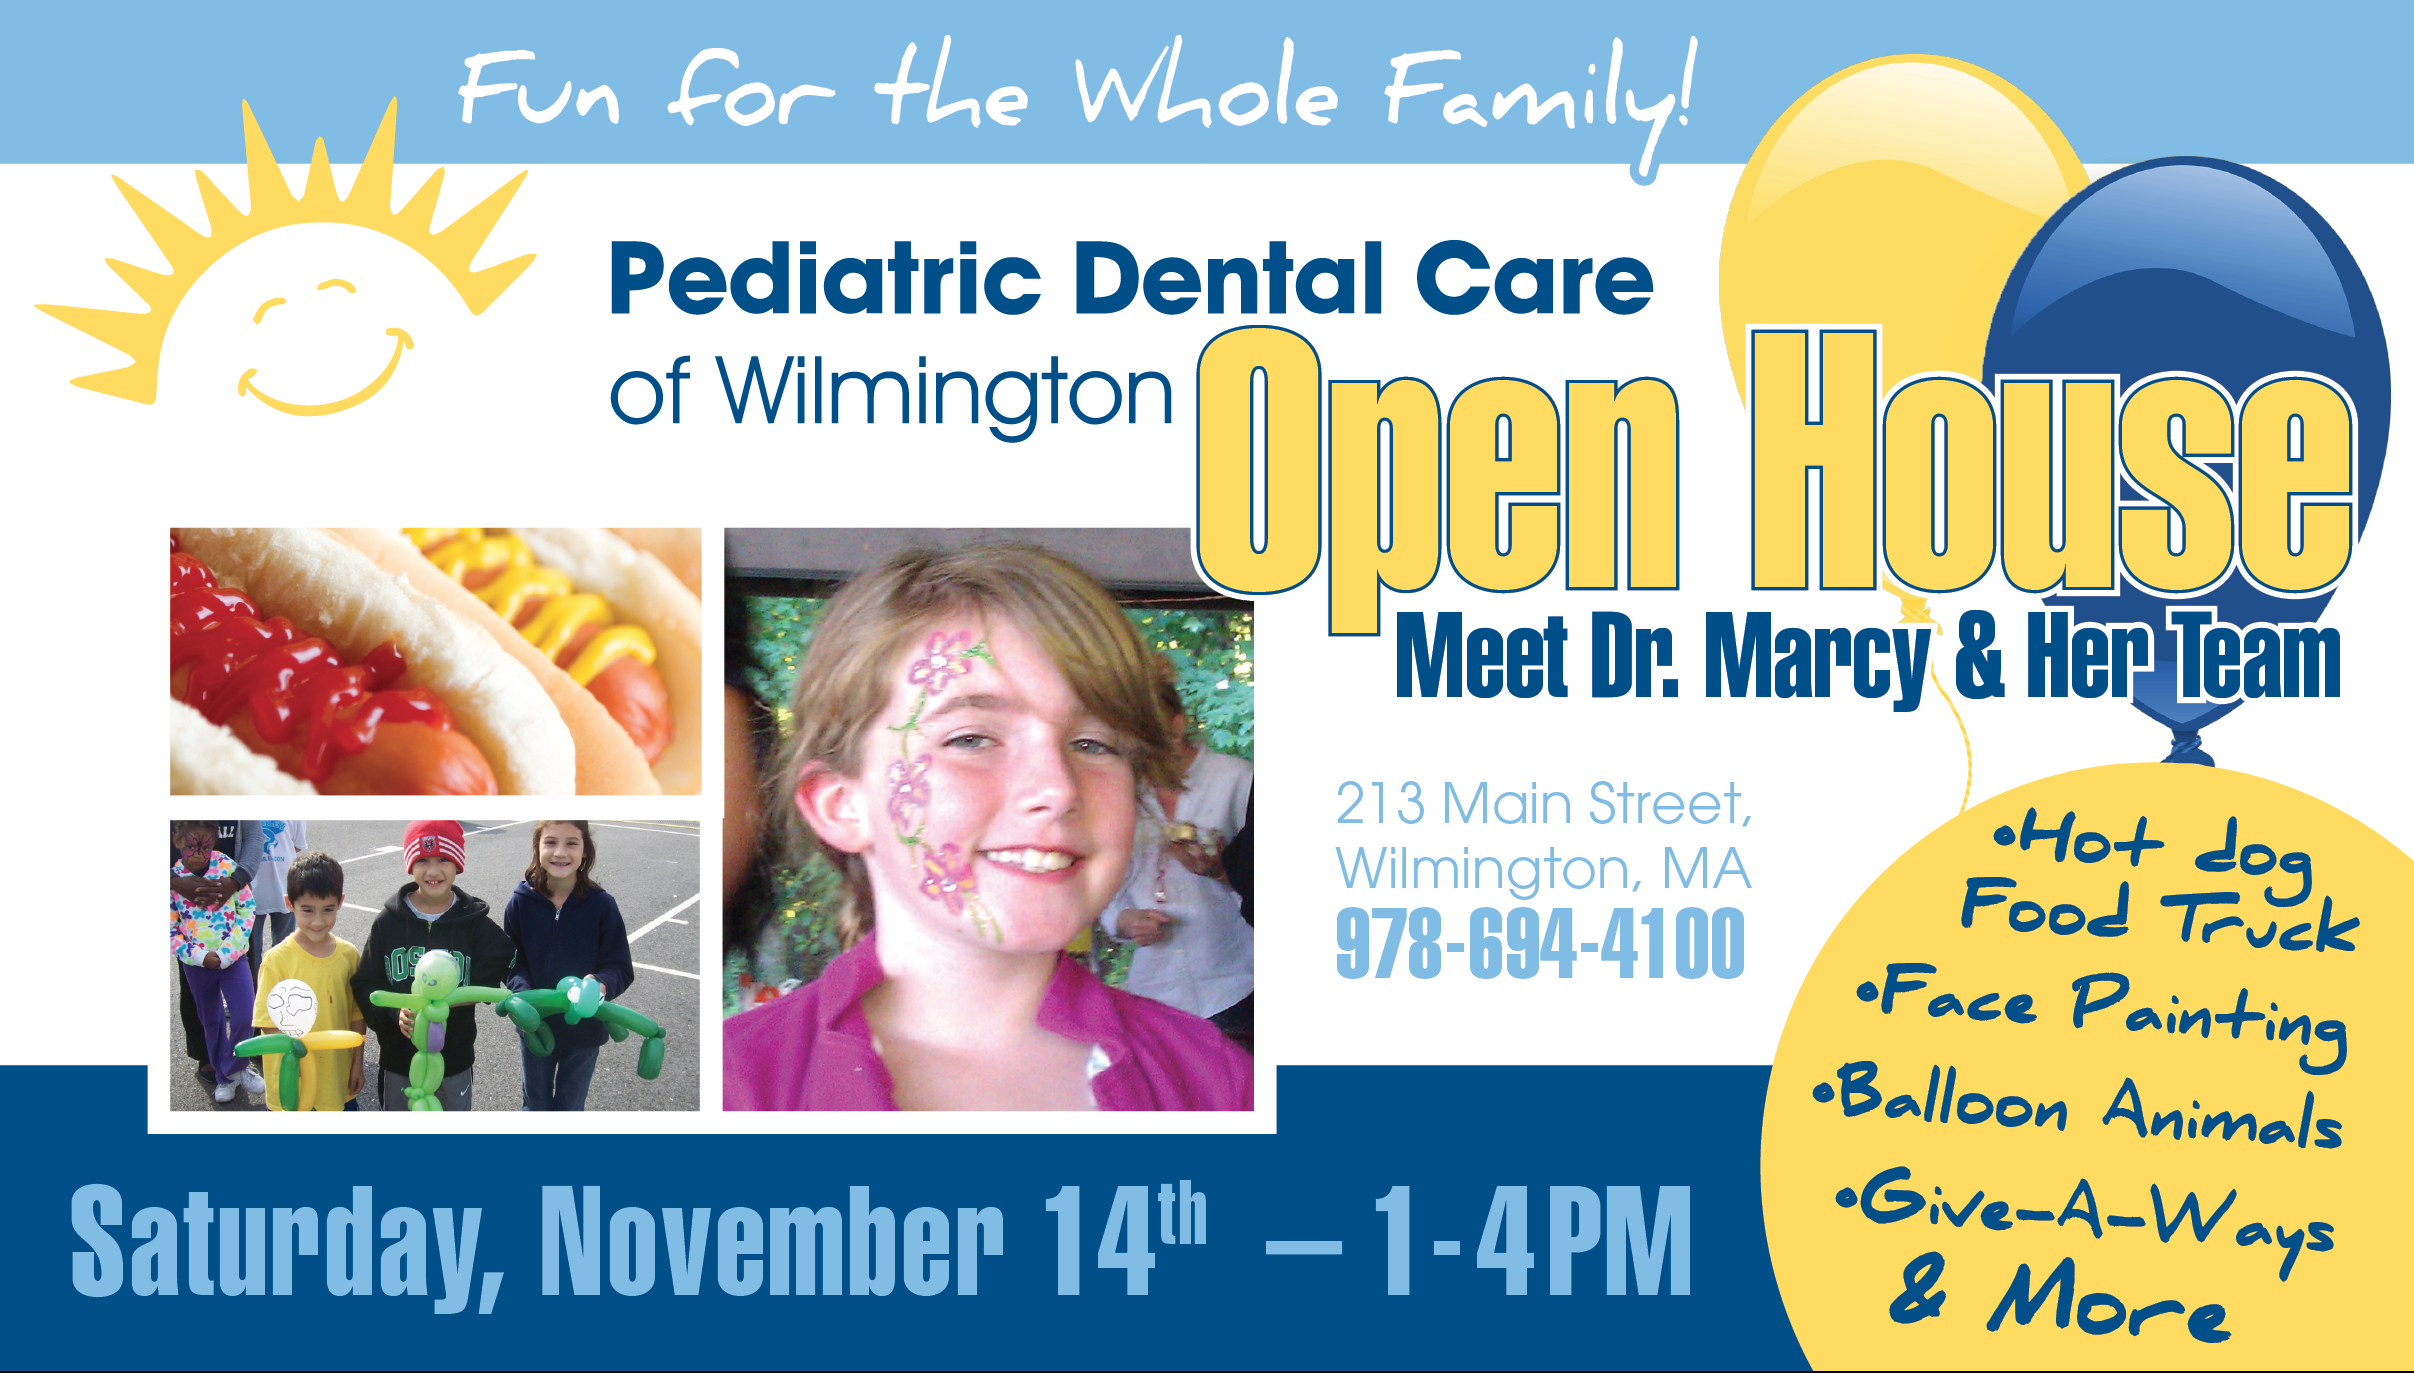 (NOTE: The Above Flyer Was Provided By Pediatric Dental Care Of Wilmington.)